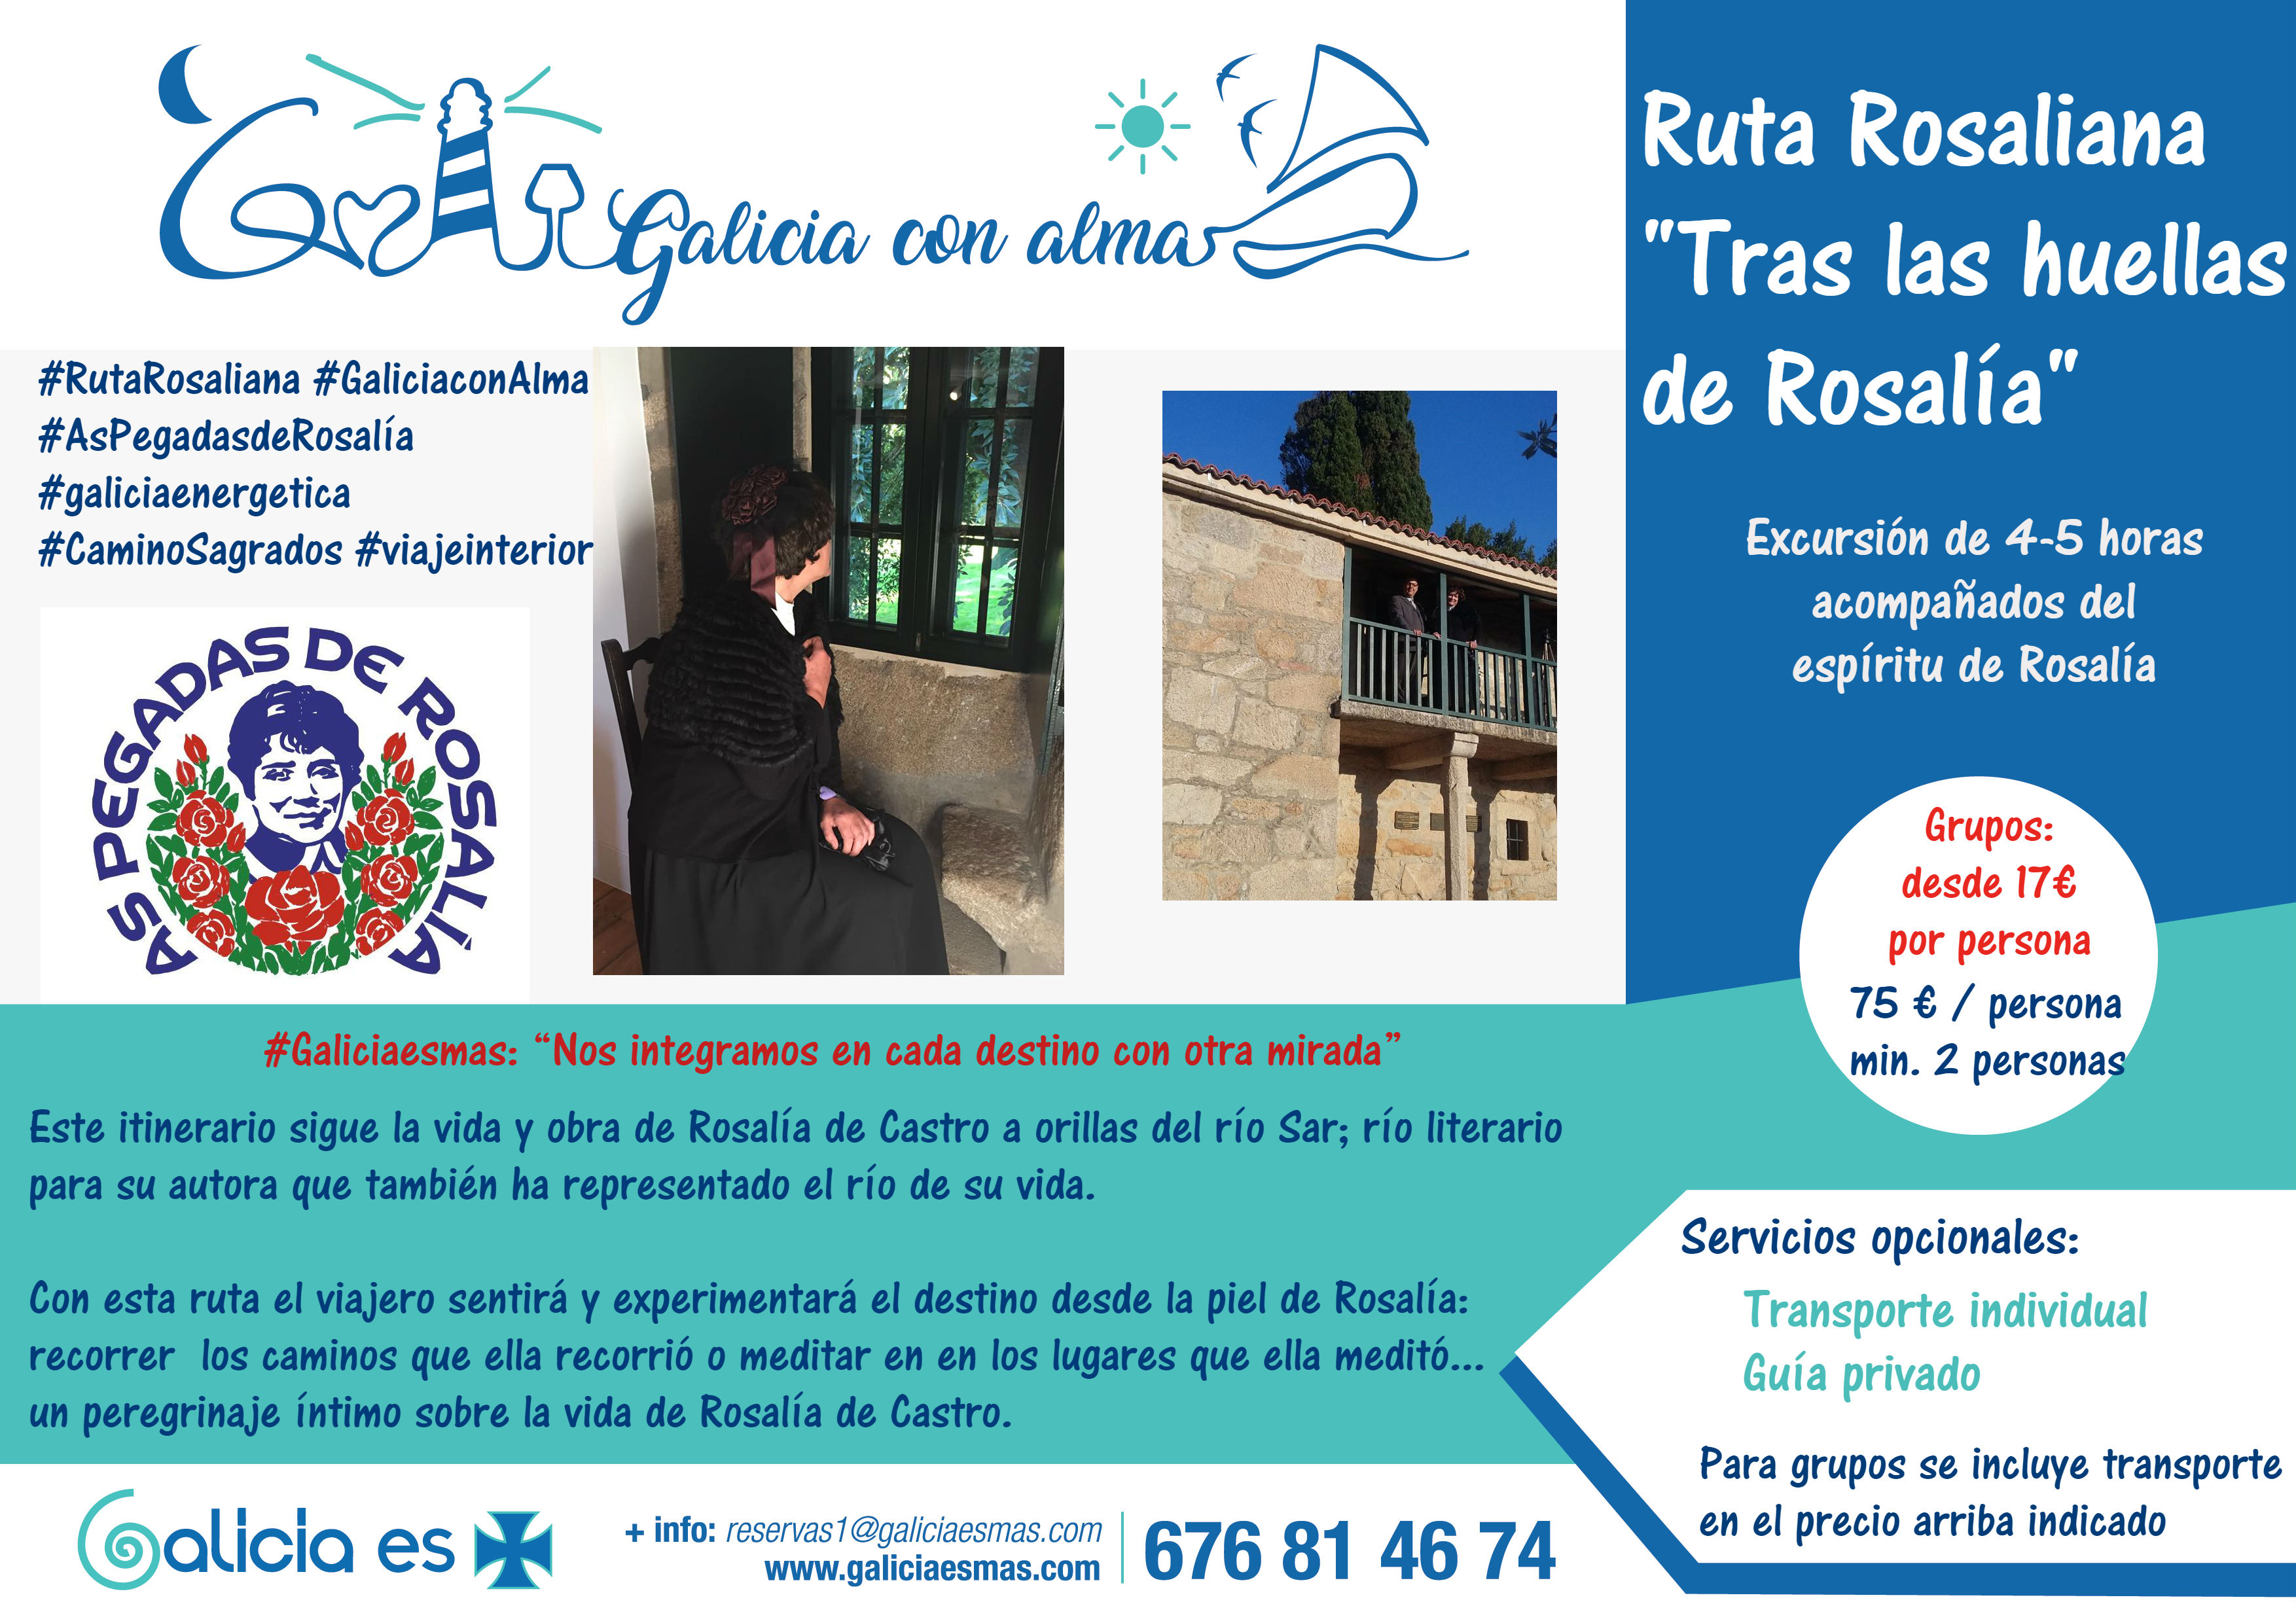 excursion-ruta-rosaliana